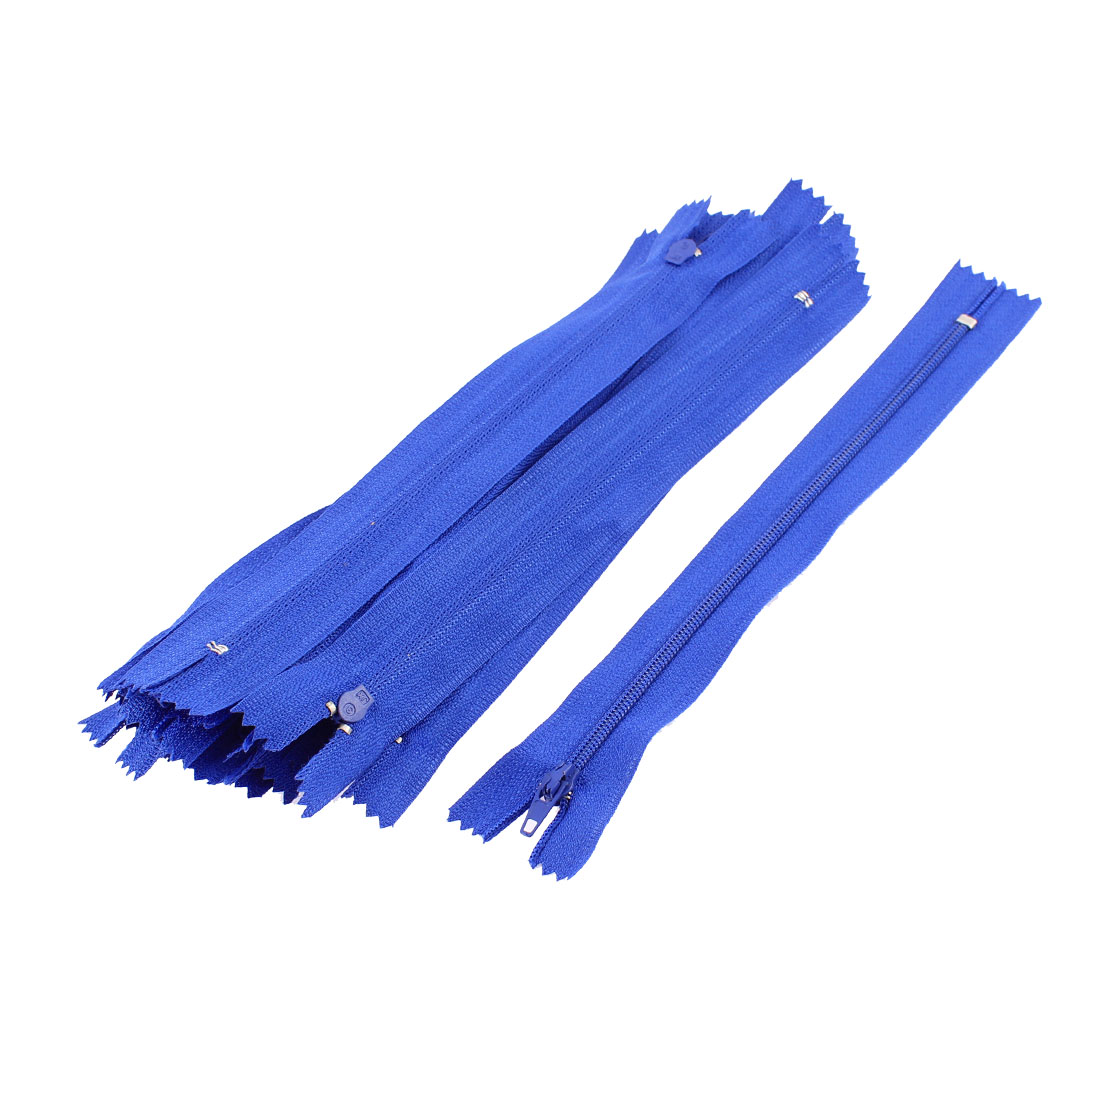 Dress Pants Closed End Nylon Zippers Tailor Sewing Craft Tool Blue 18cm 20 Pcs